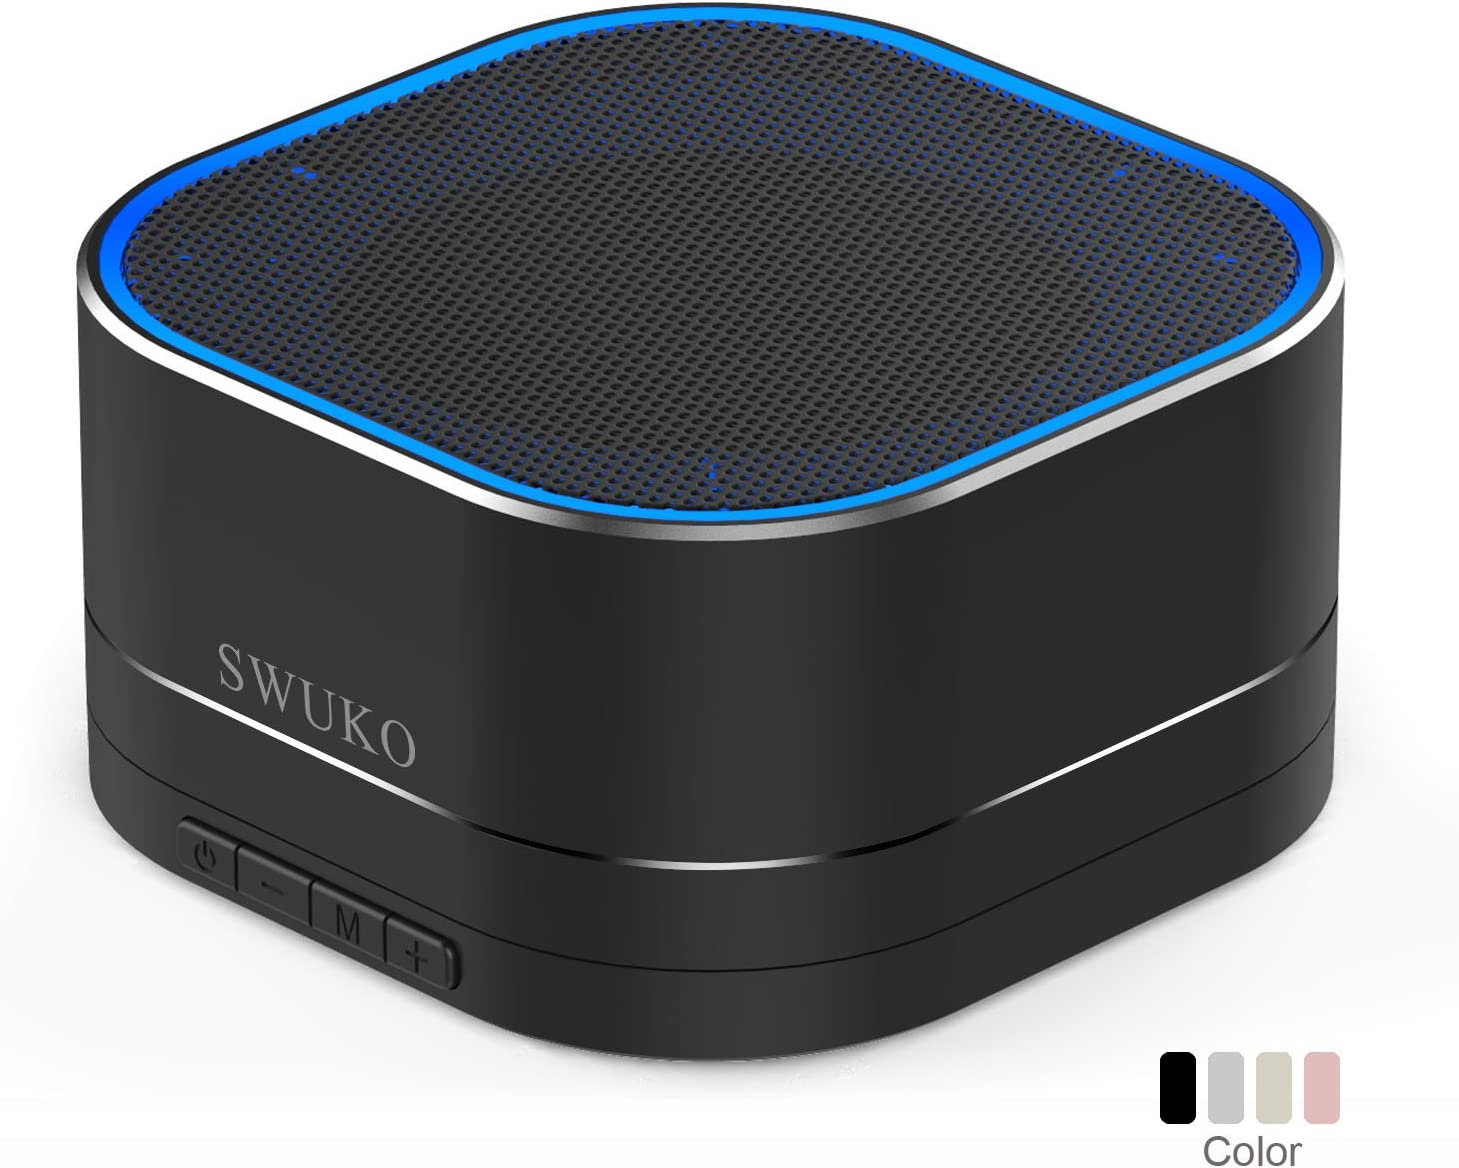 SWUKO Bluetooth Speaker with HD Sound and Bass, FM Radio, Handsfree, Premium Mini Bluetooth Speakers Portable Wireless for iPhone iPad Samsung PC Laptop Table Outdoor Travel Gift Ideas - Black